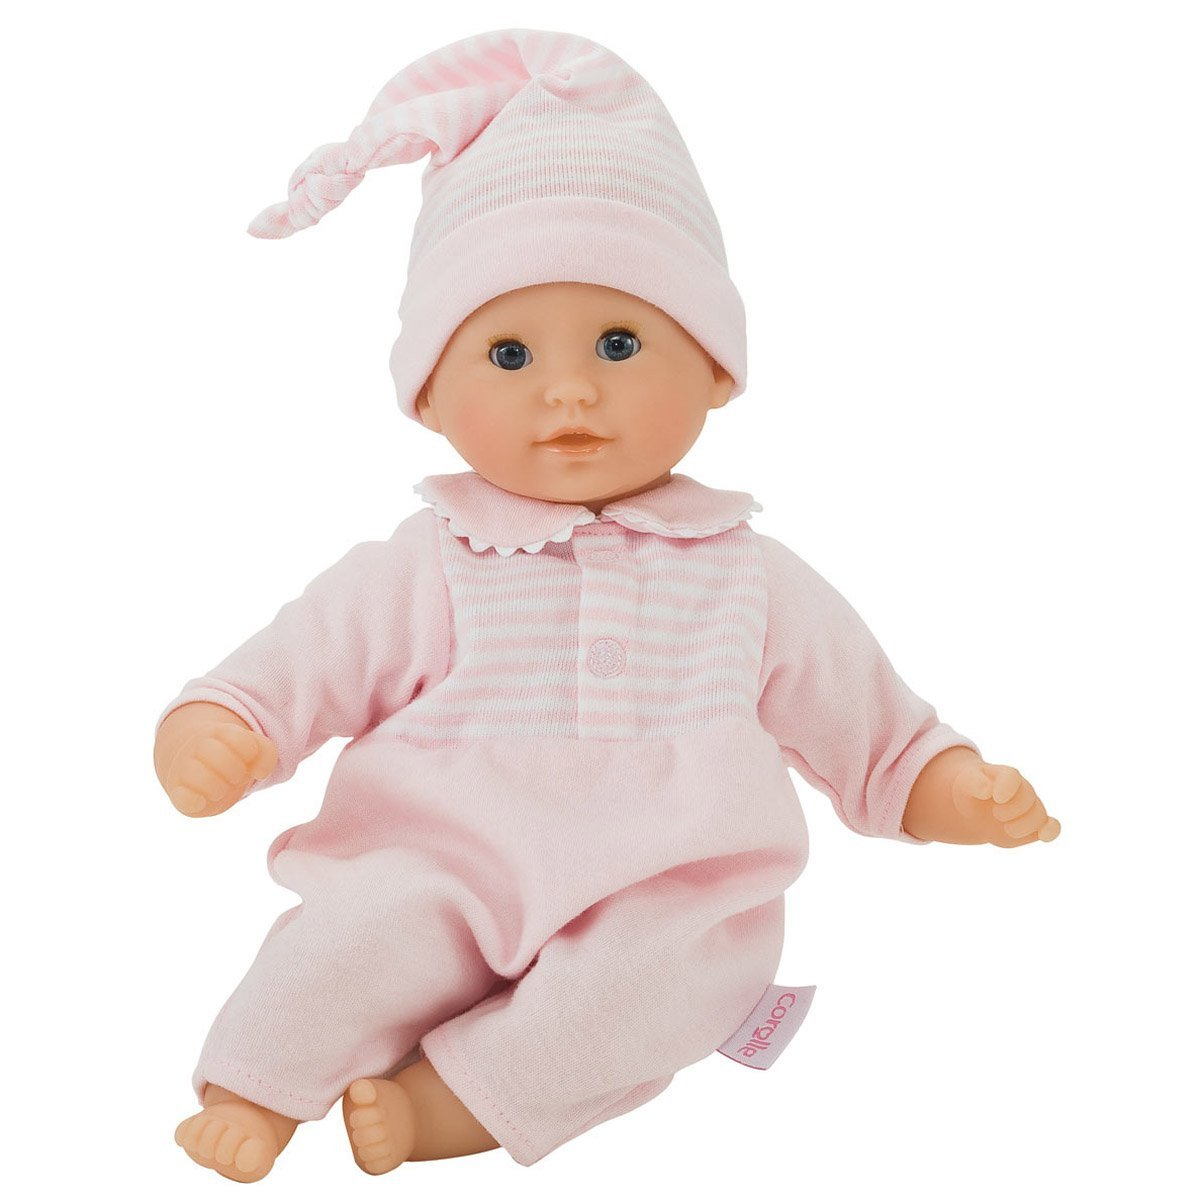 "Corolle Mon Premier Calin 12"" Baby Doll (Calin Charming Pastel) at Sears.com"